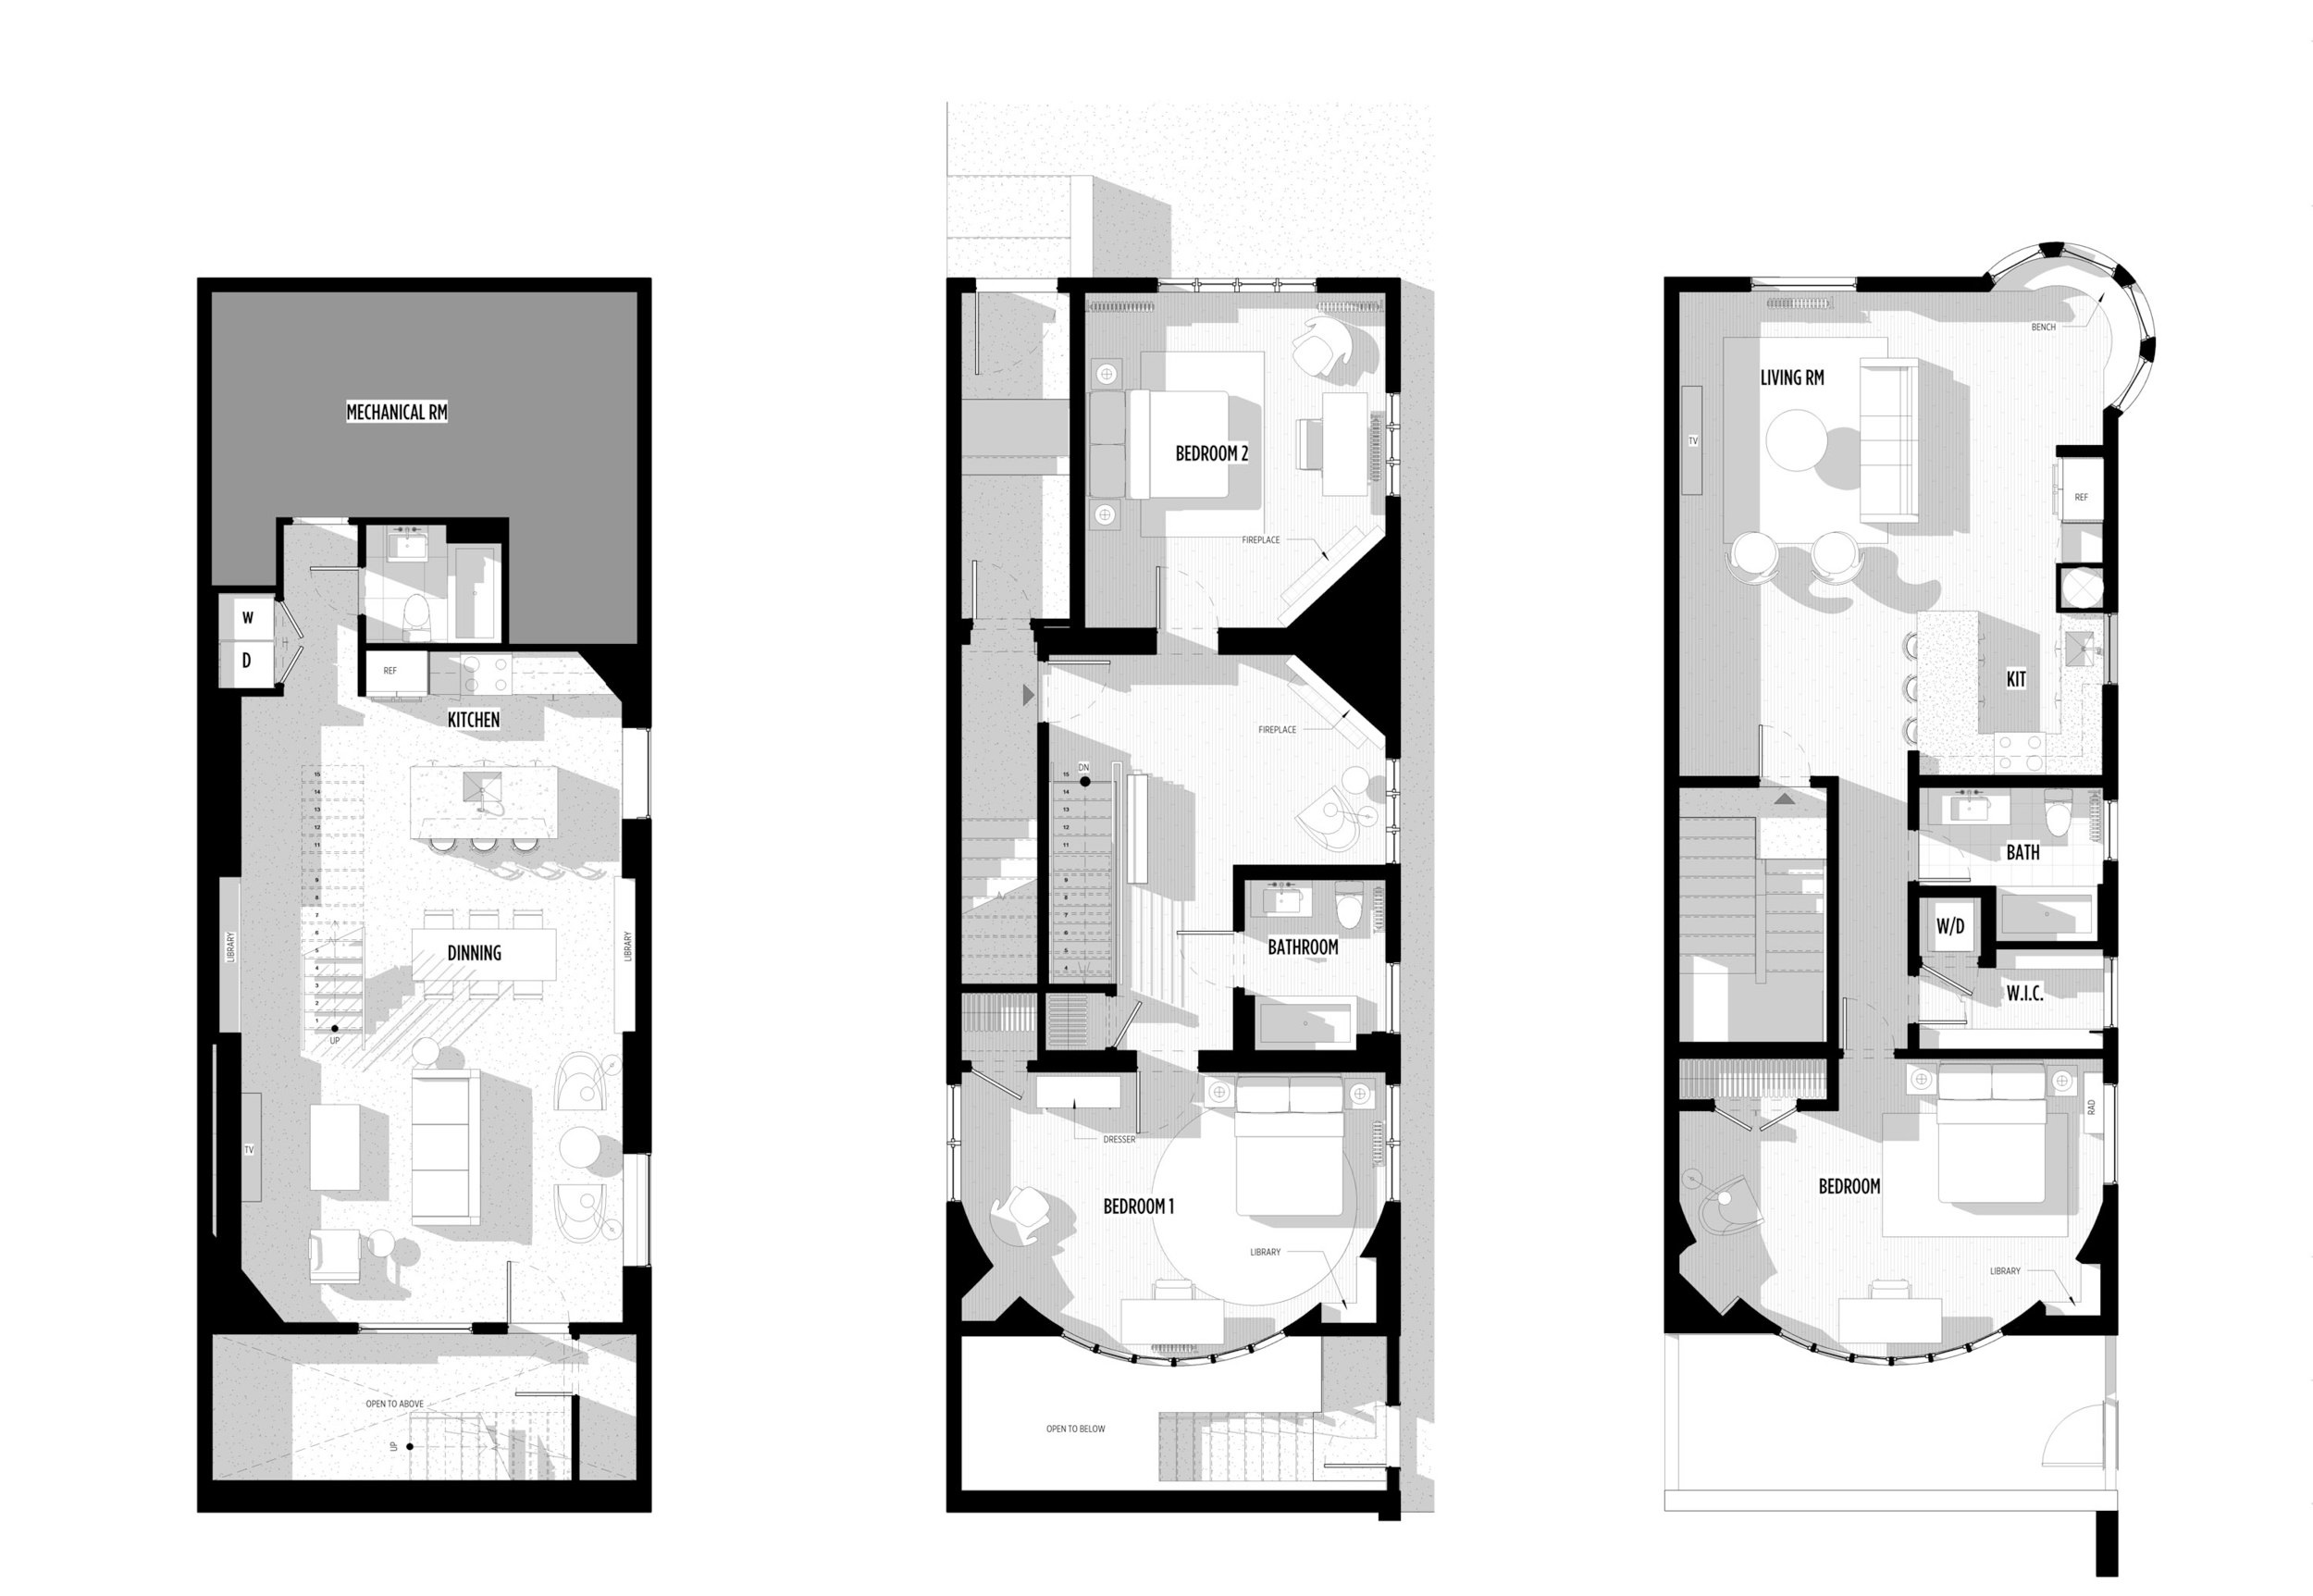 Floor Plans, Phase 1 Work, Basement to Level 2